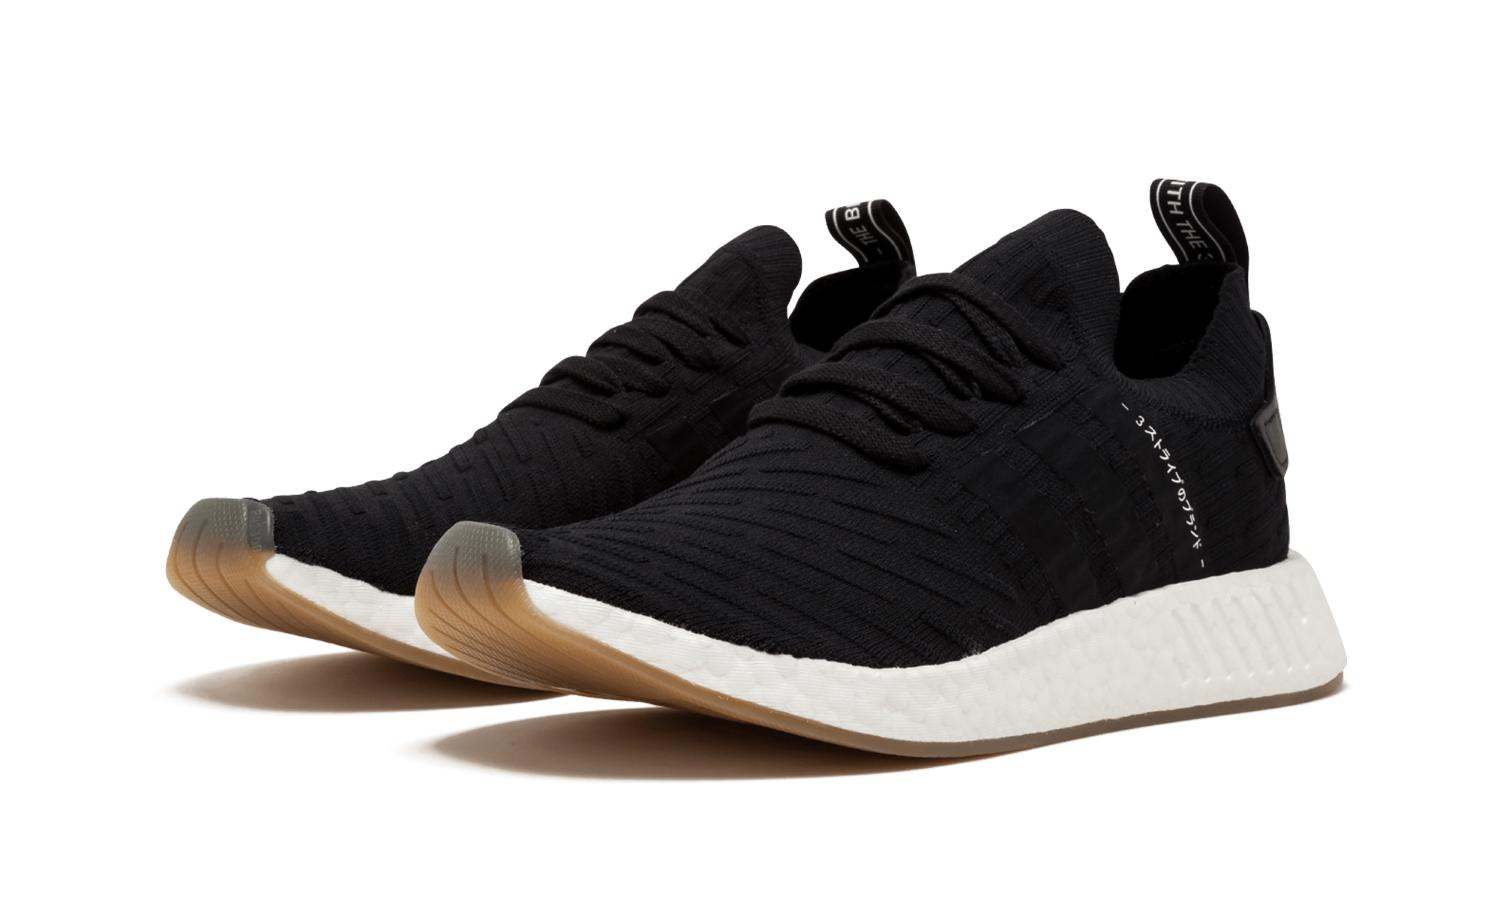 6589f6236b9ce Lyst - adidas By9696 Nmd r2 Pk  cblack in Black for Men